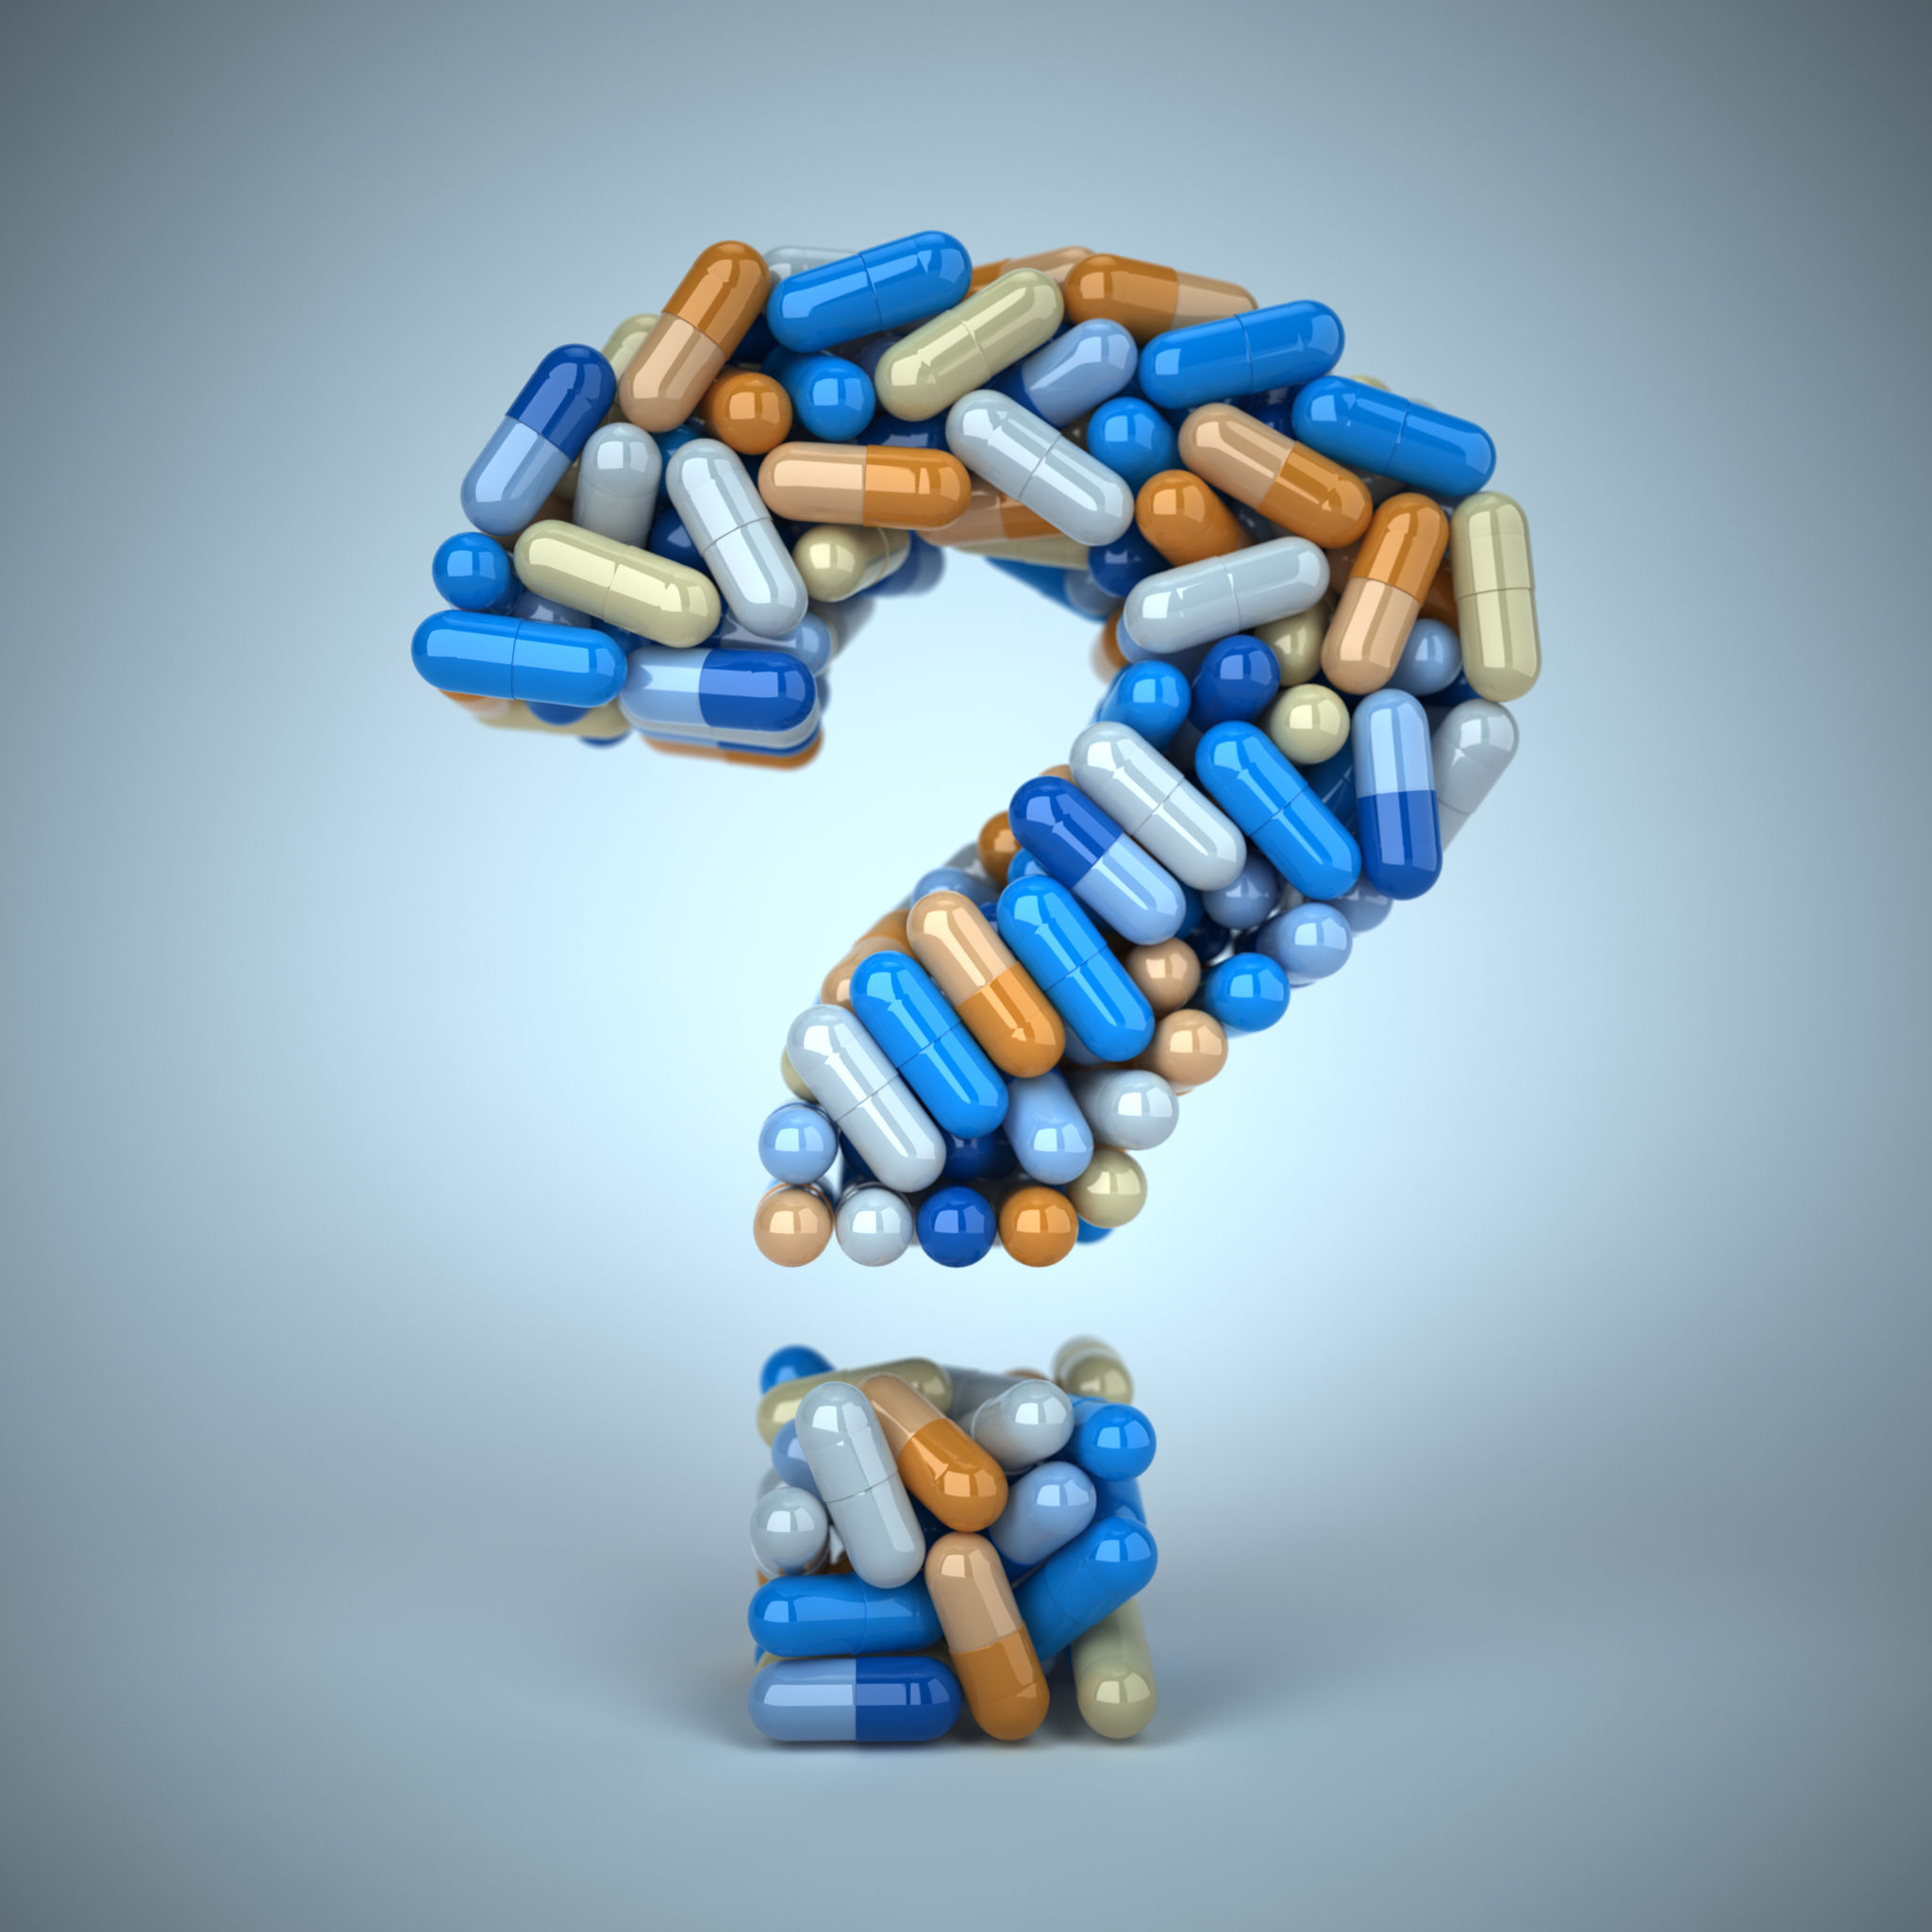 Pills or capsules as a question mark on a blue background.